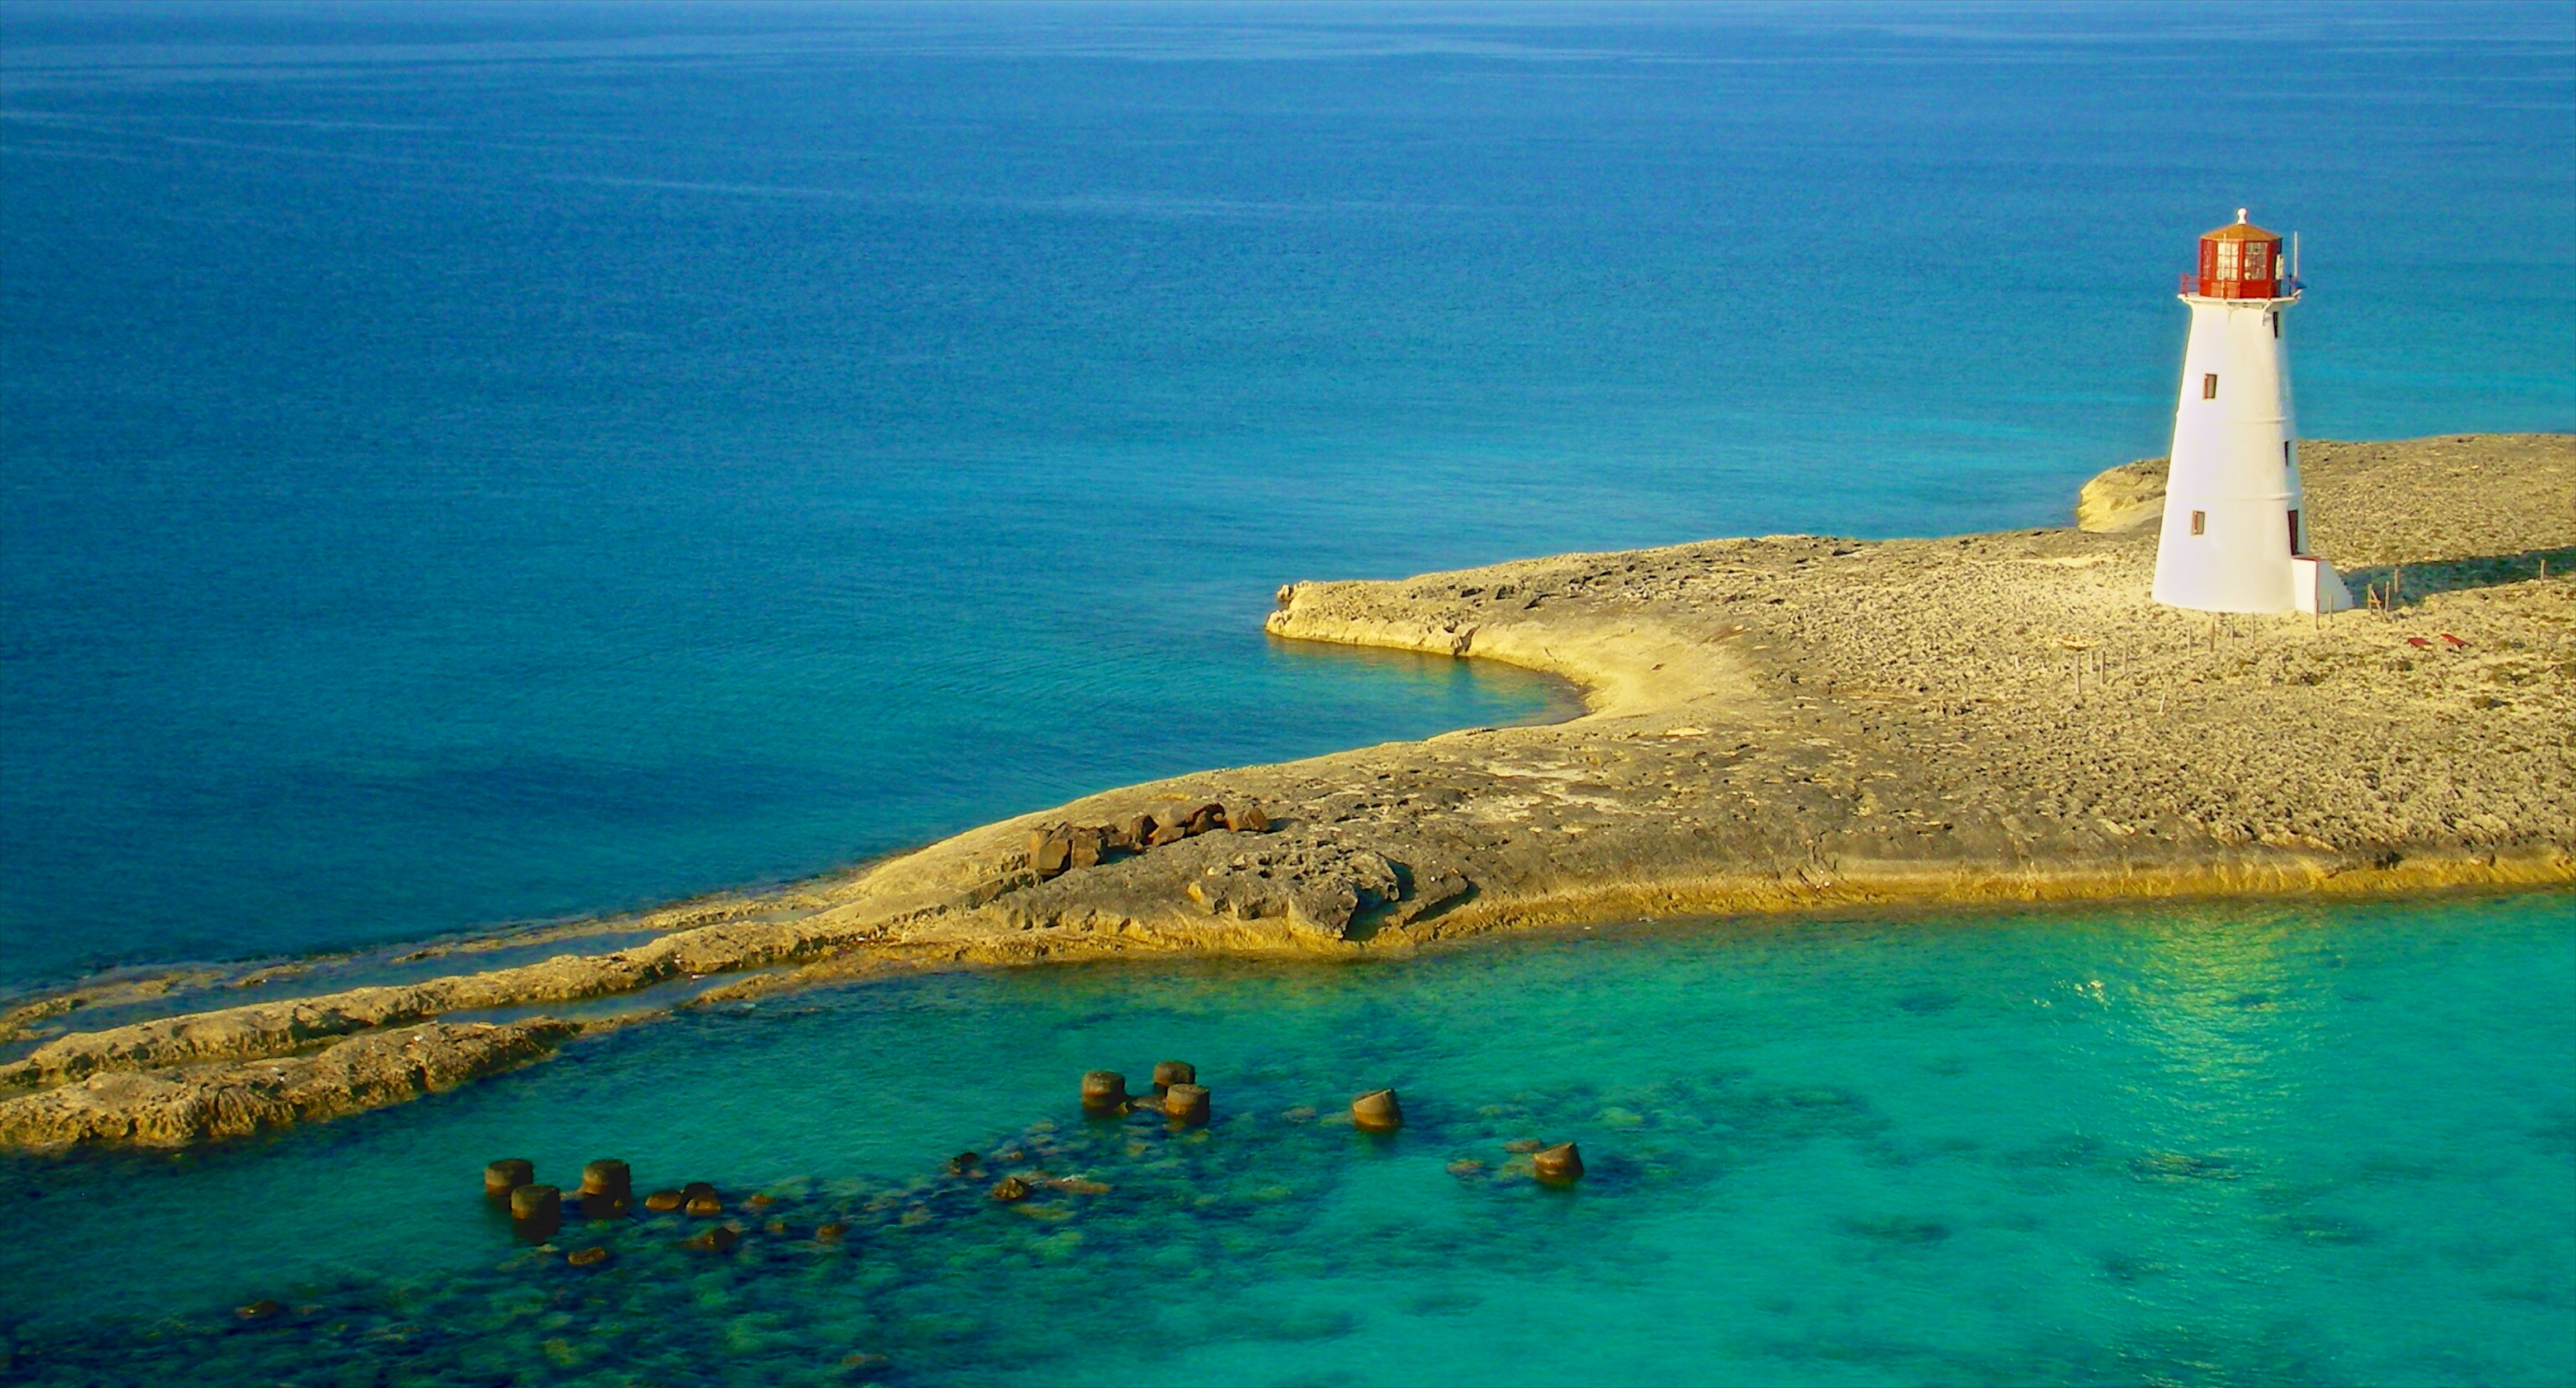 Bird's Eye Photography of White Lighthouse on Island, Bay, Sea, Vacation, Turquoise, HQ Photo